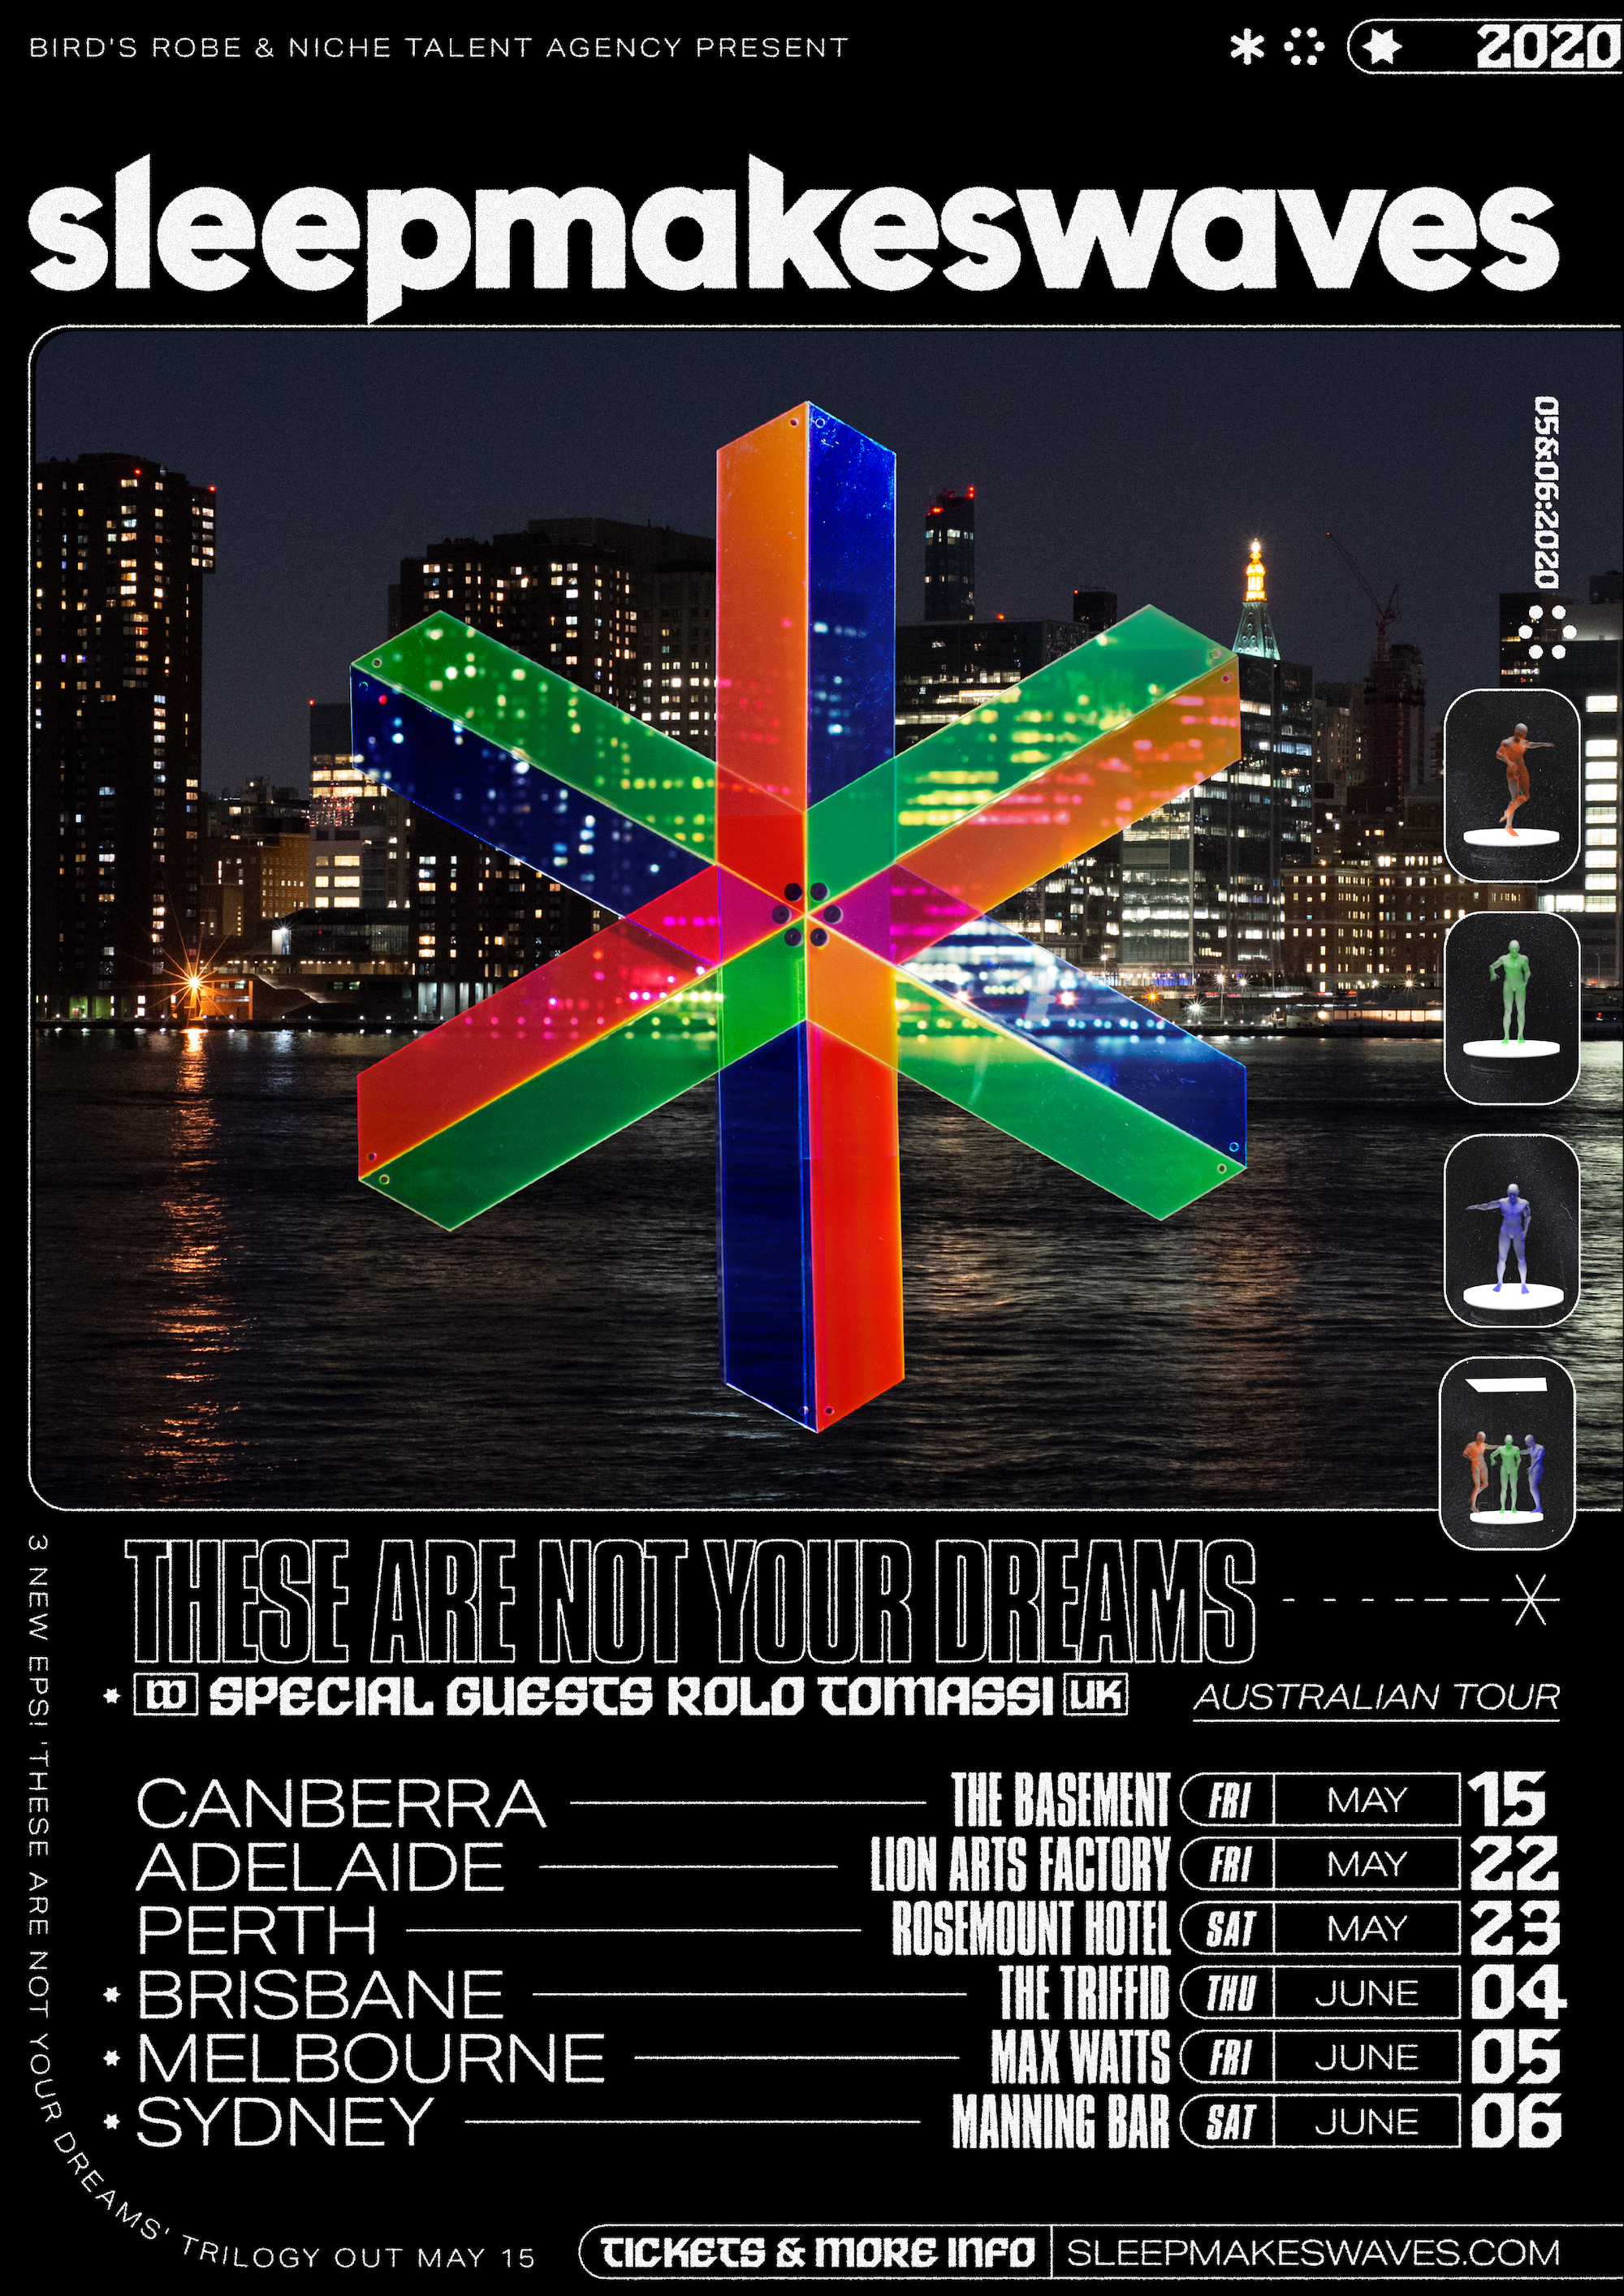 sleepmakeswaves announce 'these are not your dreams' Australian tour w/Rolo Tomassi (UK)